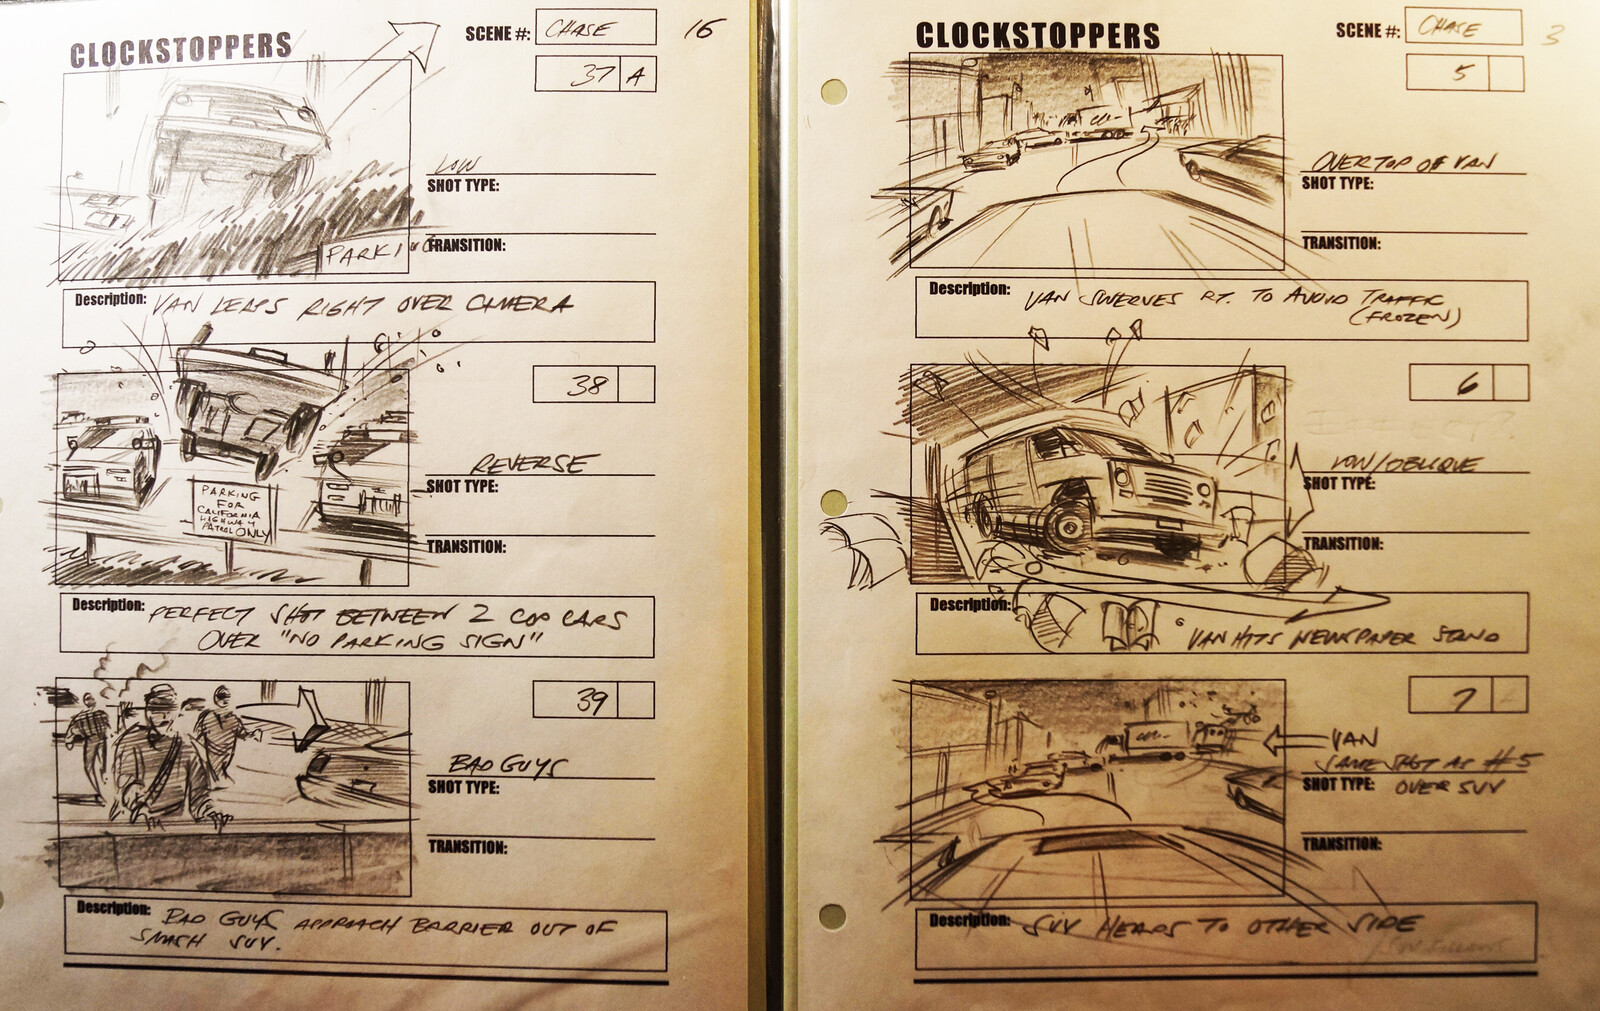 STORYBOARDS FOR FILM, TV & COMMERCIALS